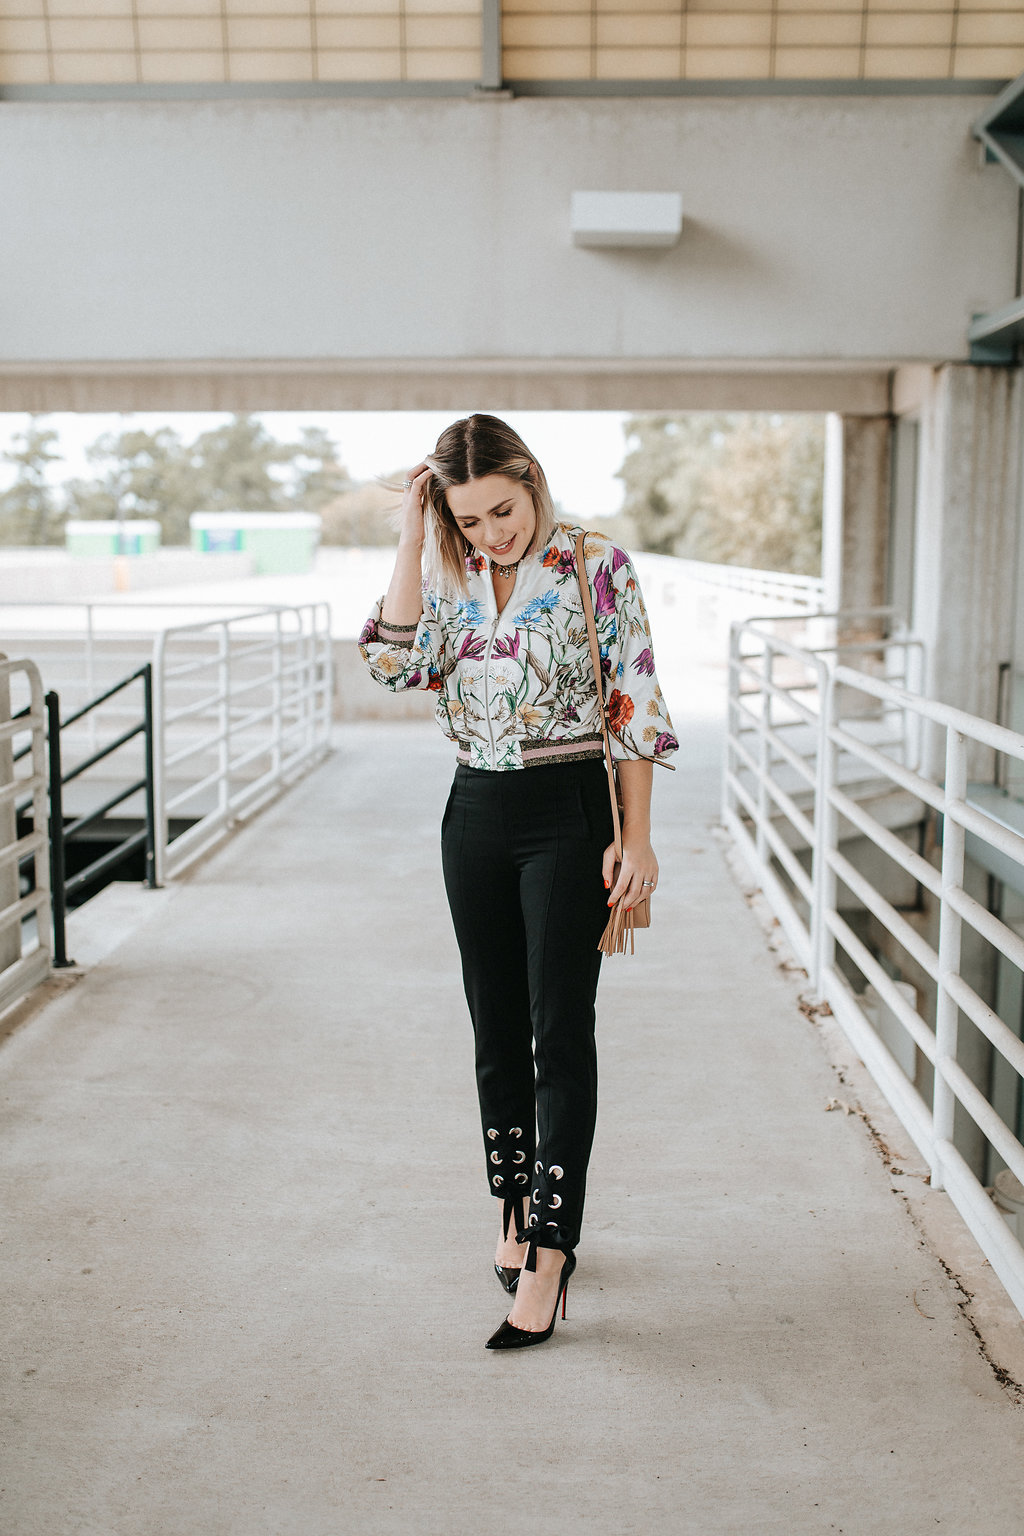 Floral Bomber Jacket | Anthropolgie jacket | HM pants | Floral Jacket | Uptown with Elly Brown